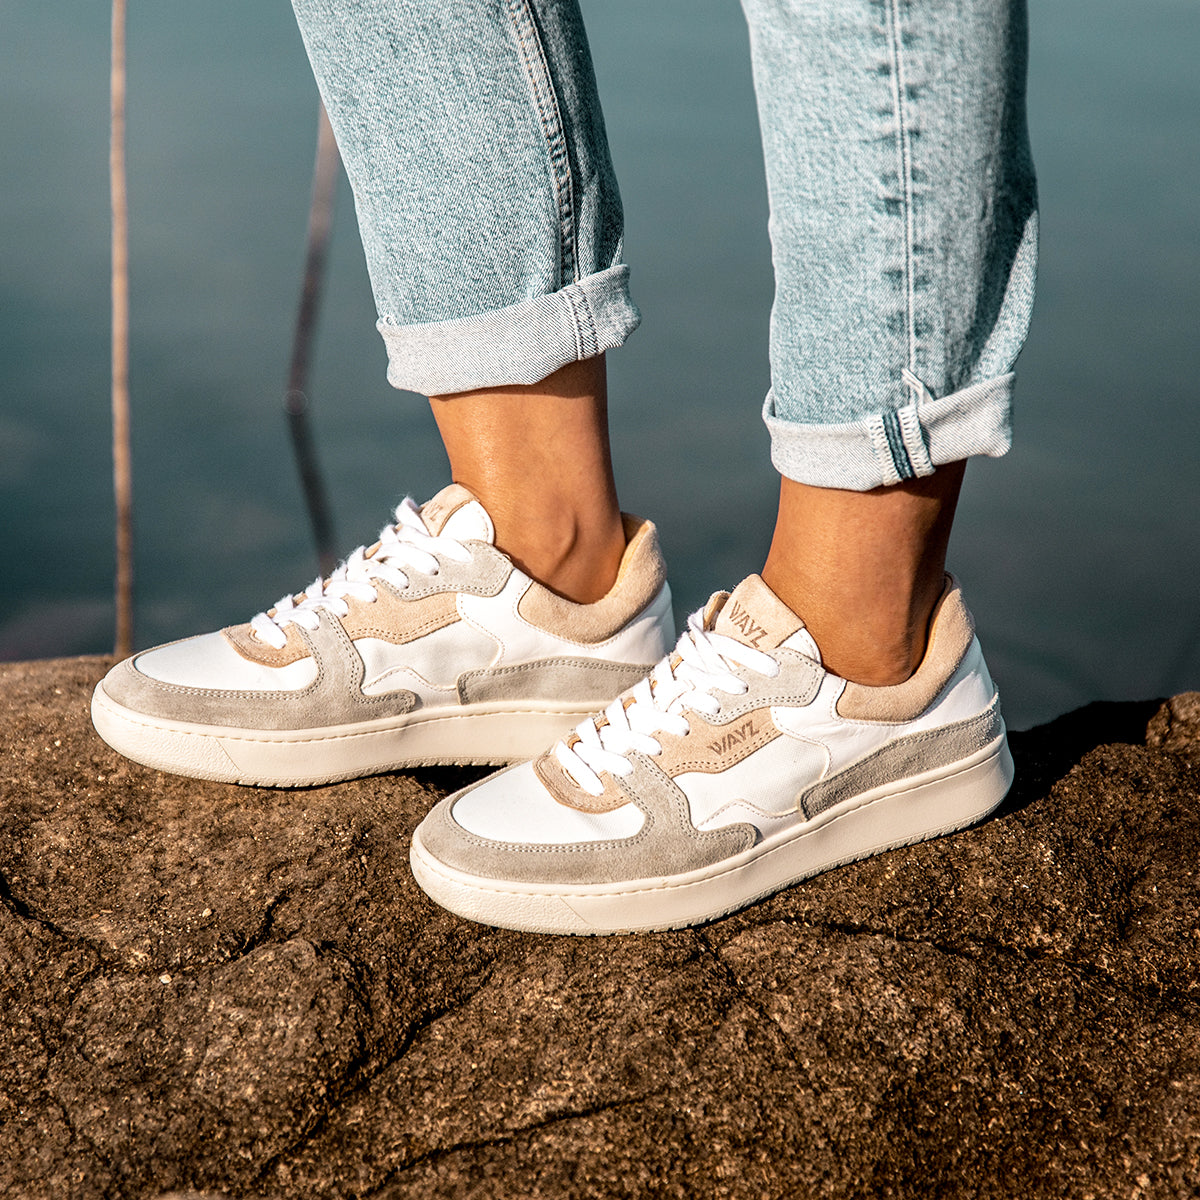 The Sonder White, Grey and Almond Sneakers